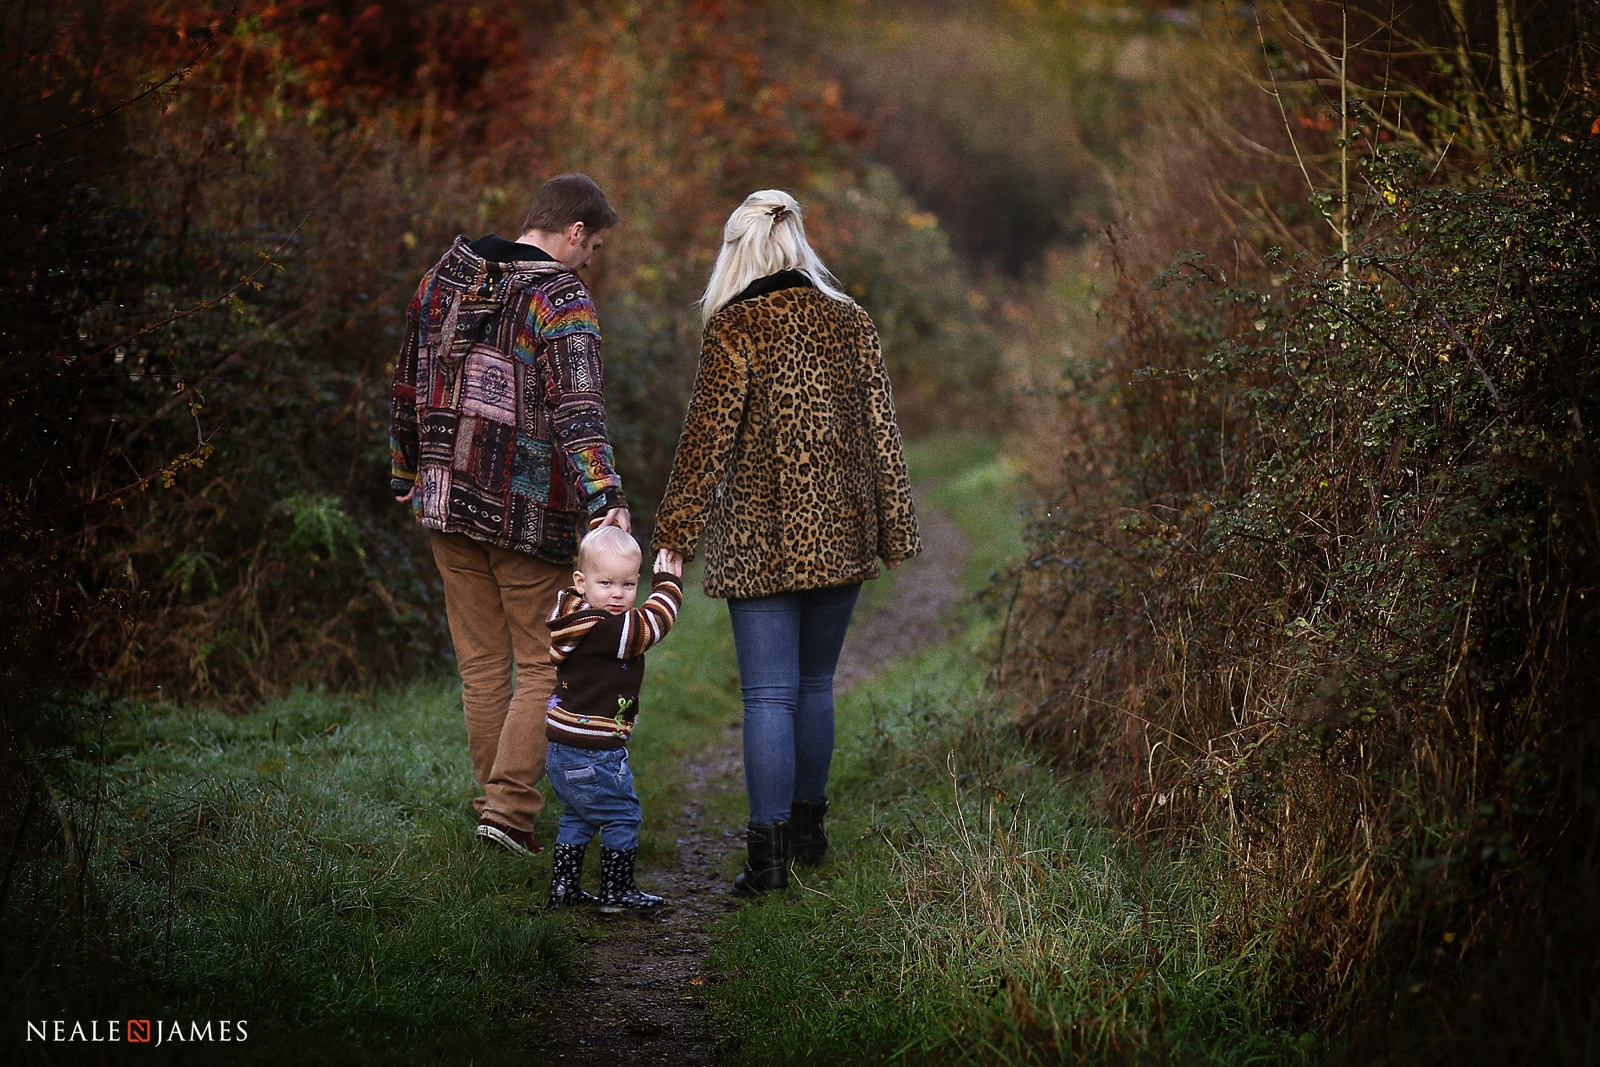 A young boy turns round to look at the camera as he walks hand in hand with his parents through the countryside